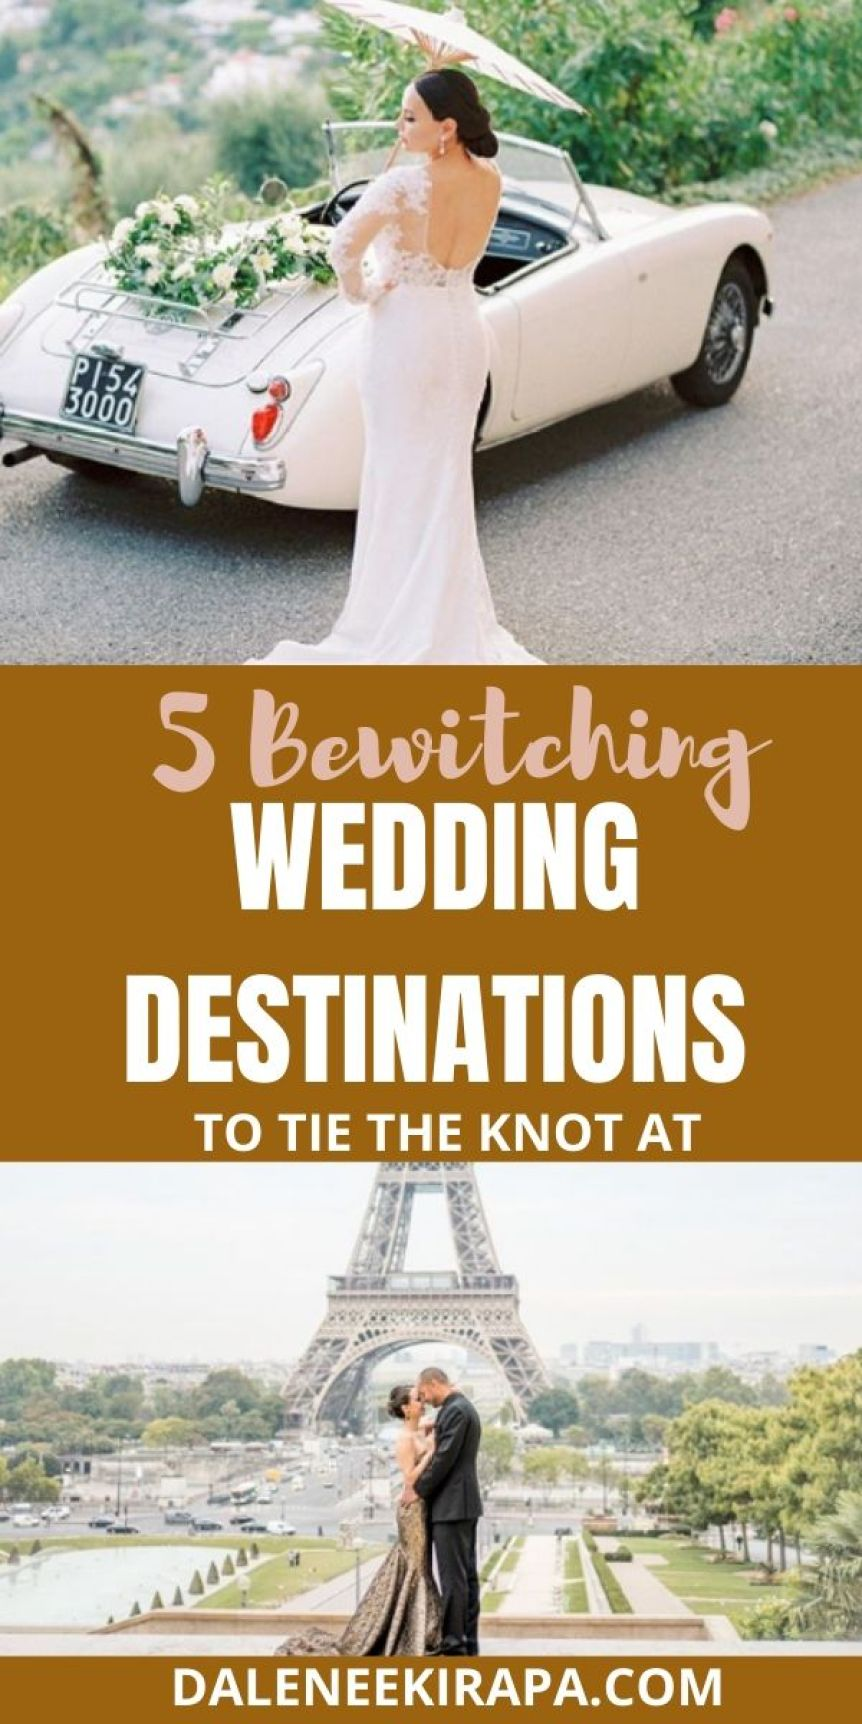 Tie The Knot In Style At Some Bewitching Wedding Destinations!